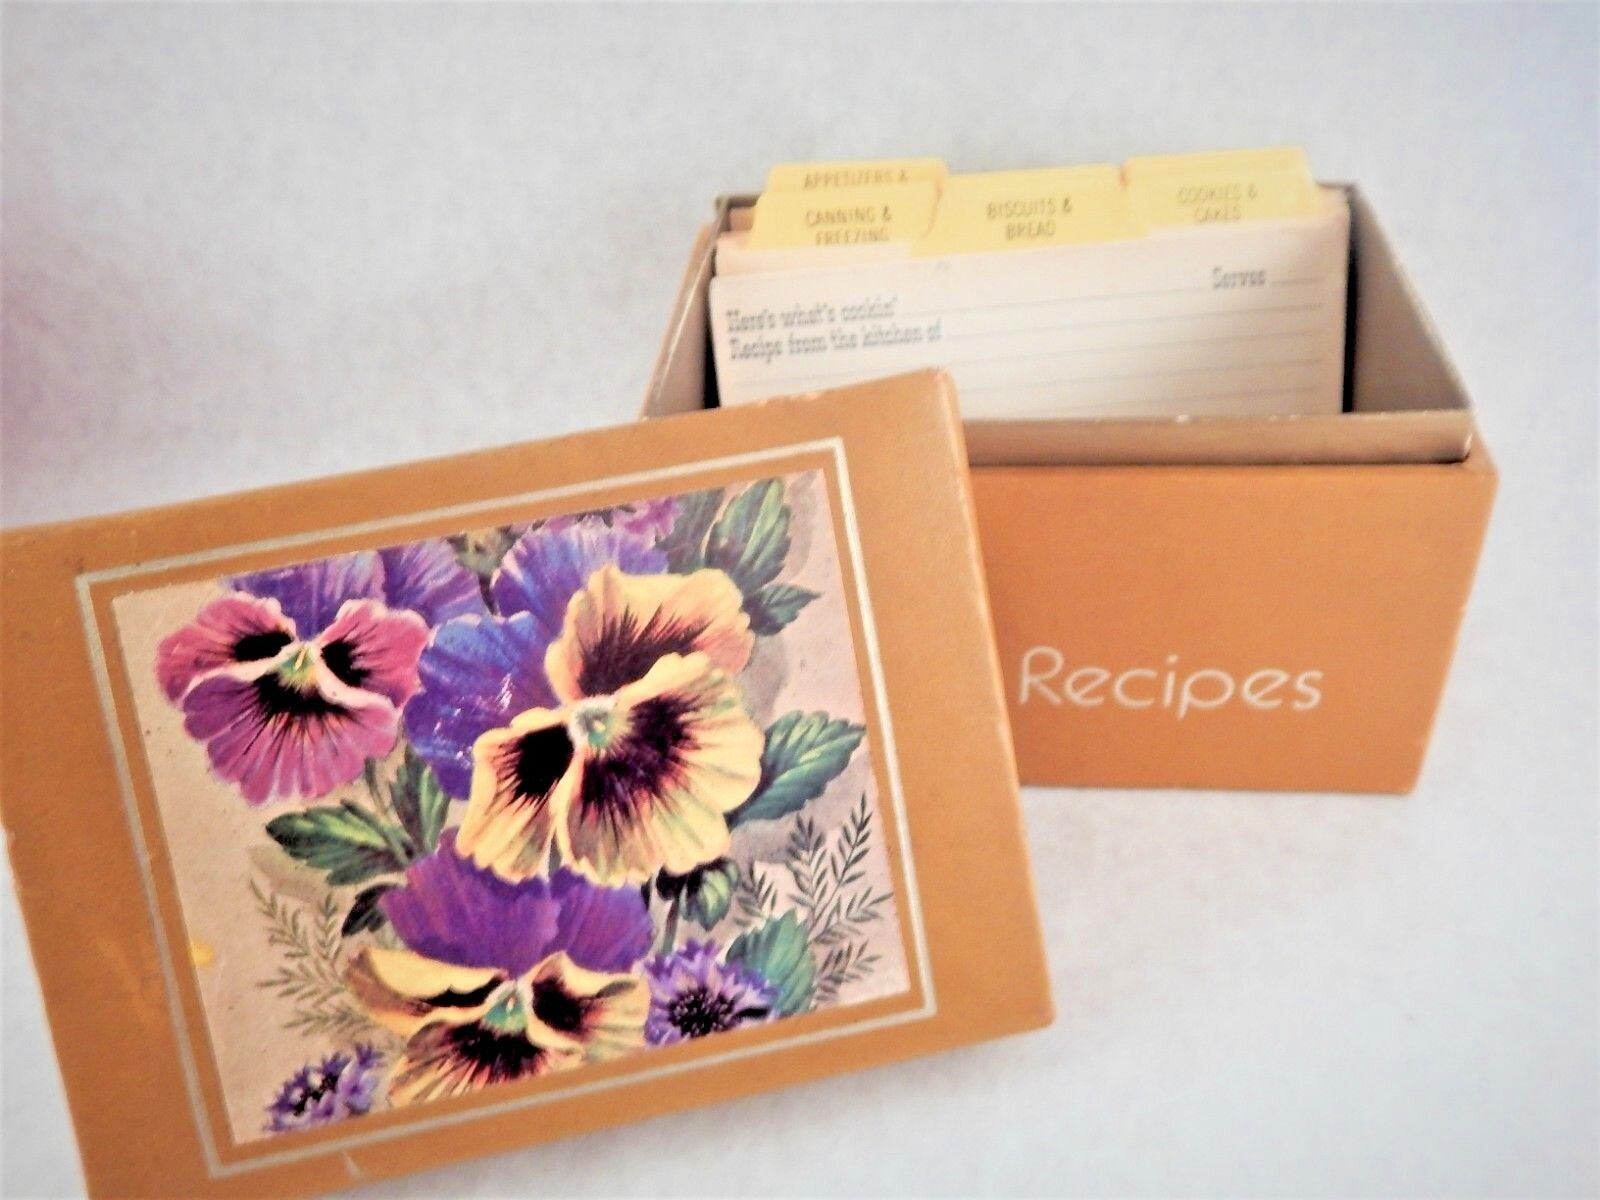 Recipe Card Box Flowers Floral Pansy Pansies Vintage Mid Century Kitchen Decor